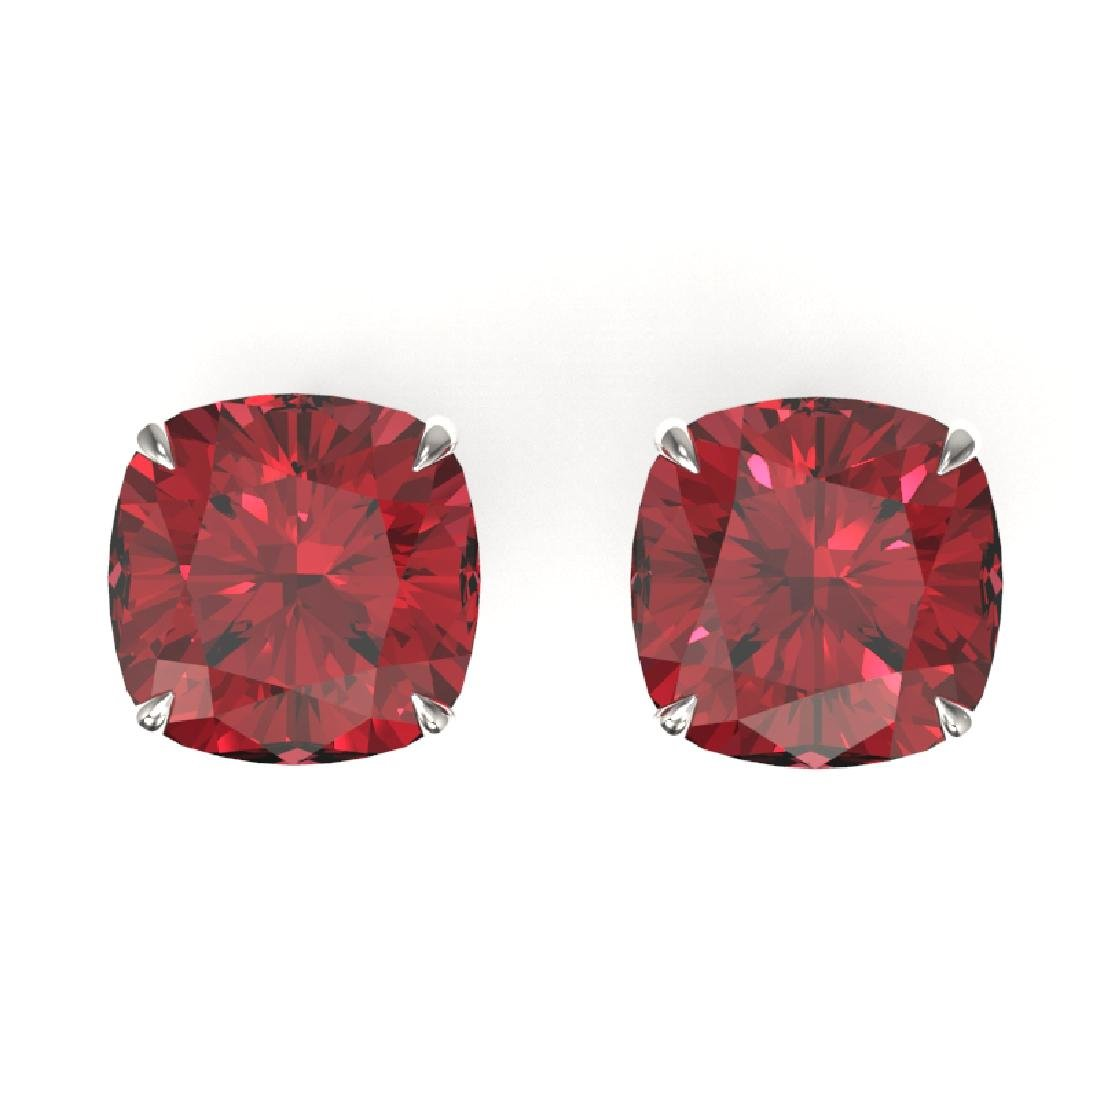 12 CTW Cushion Cut Pink Tourmaline Solitaire Stud